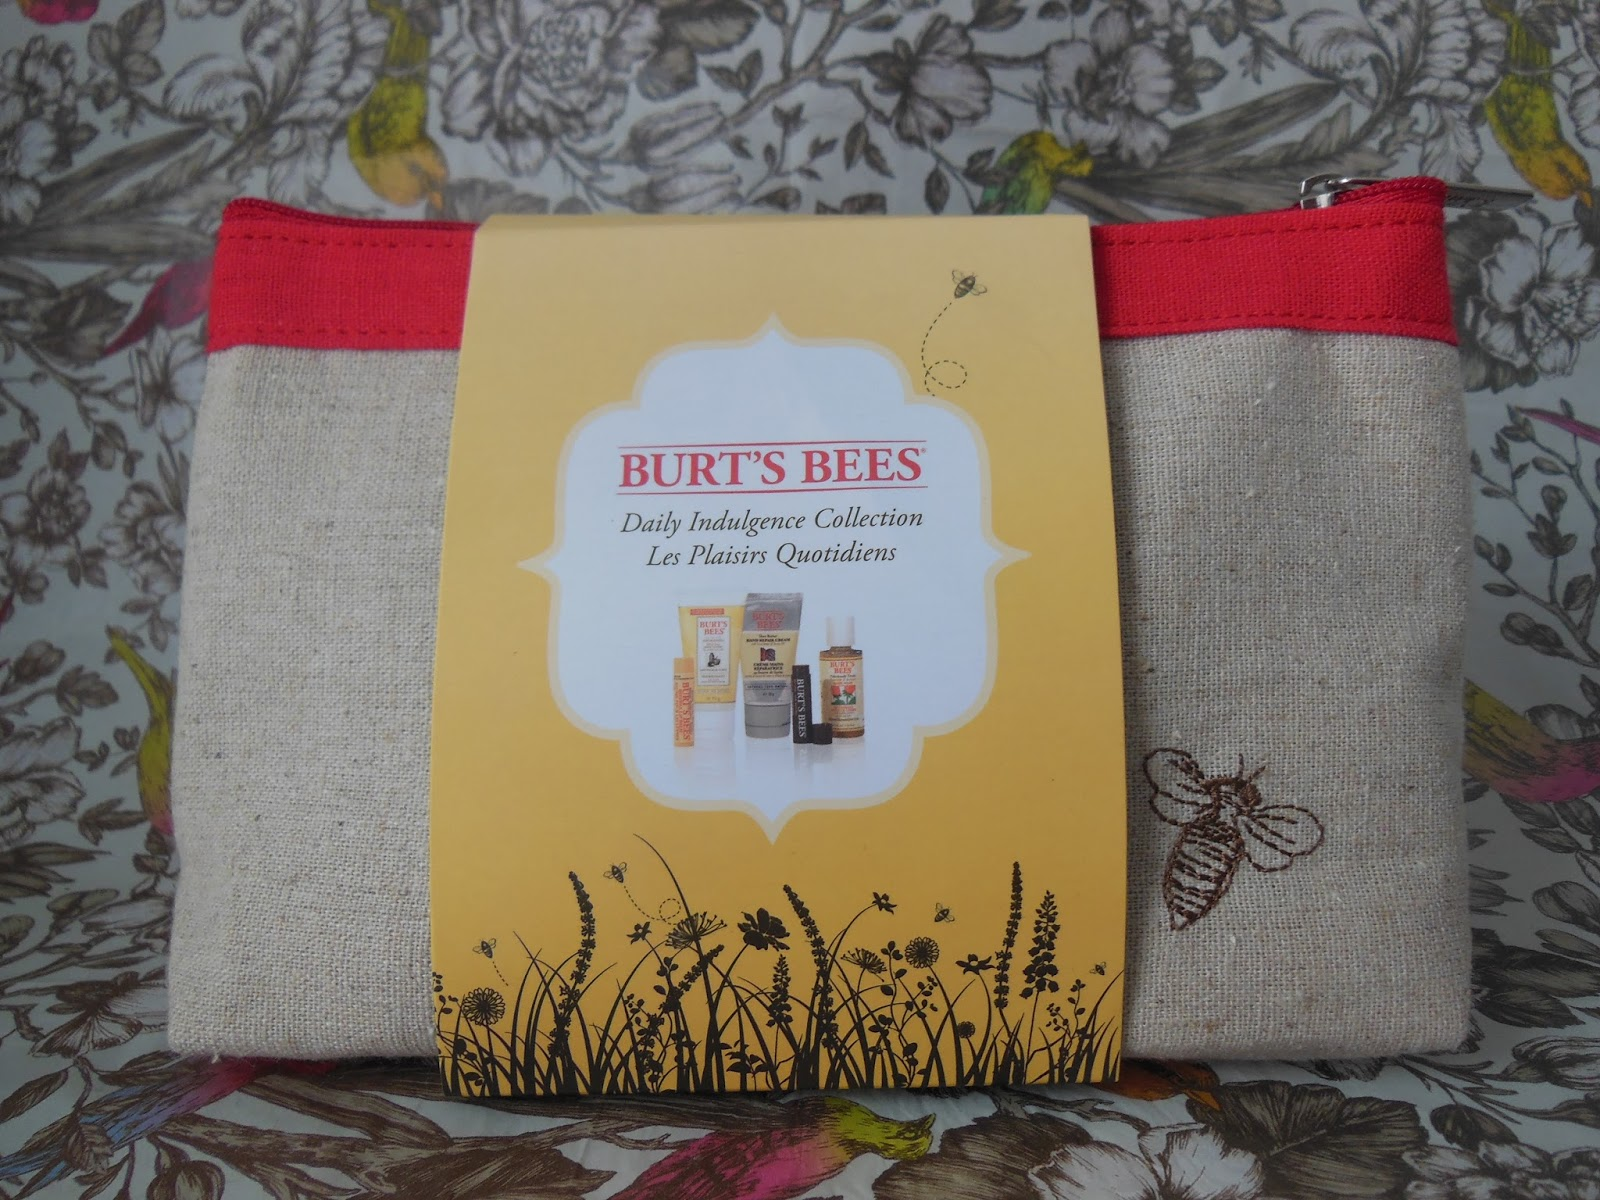 Burt's Bees Daily Indulgence collection